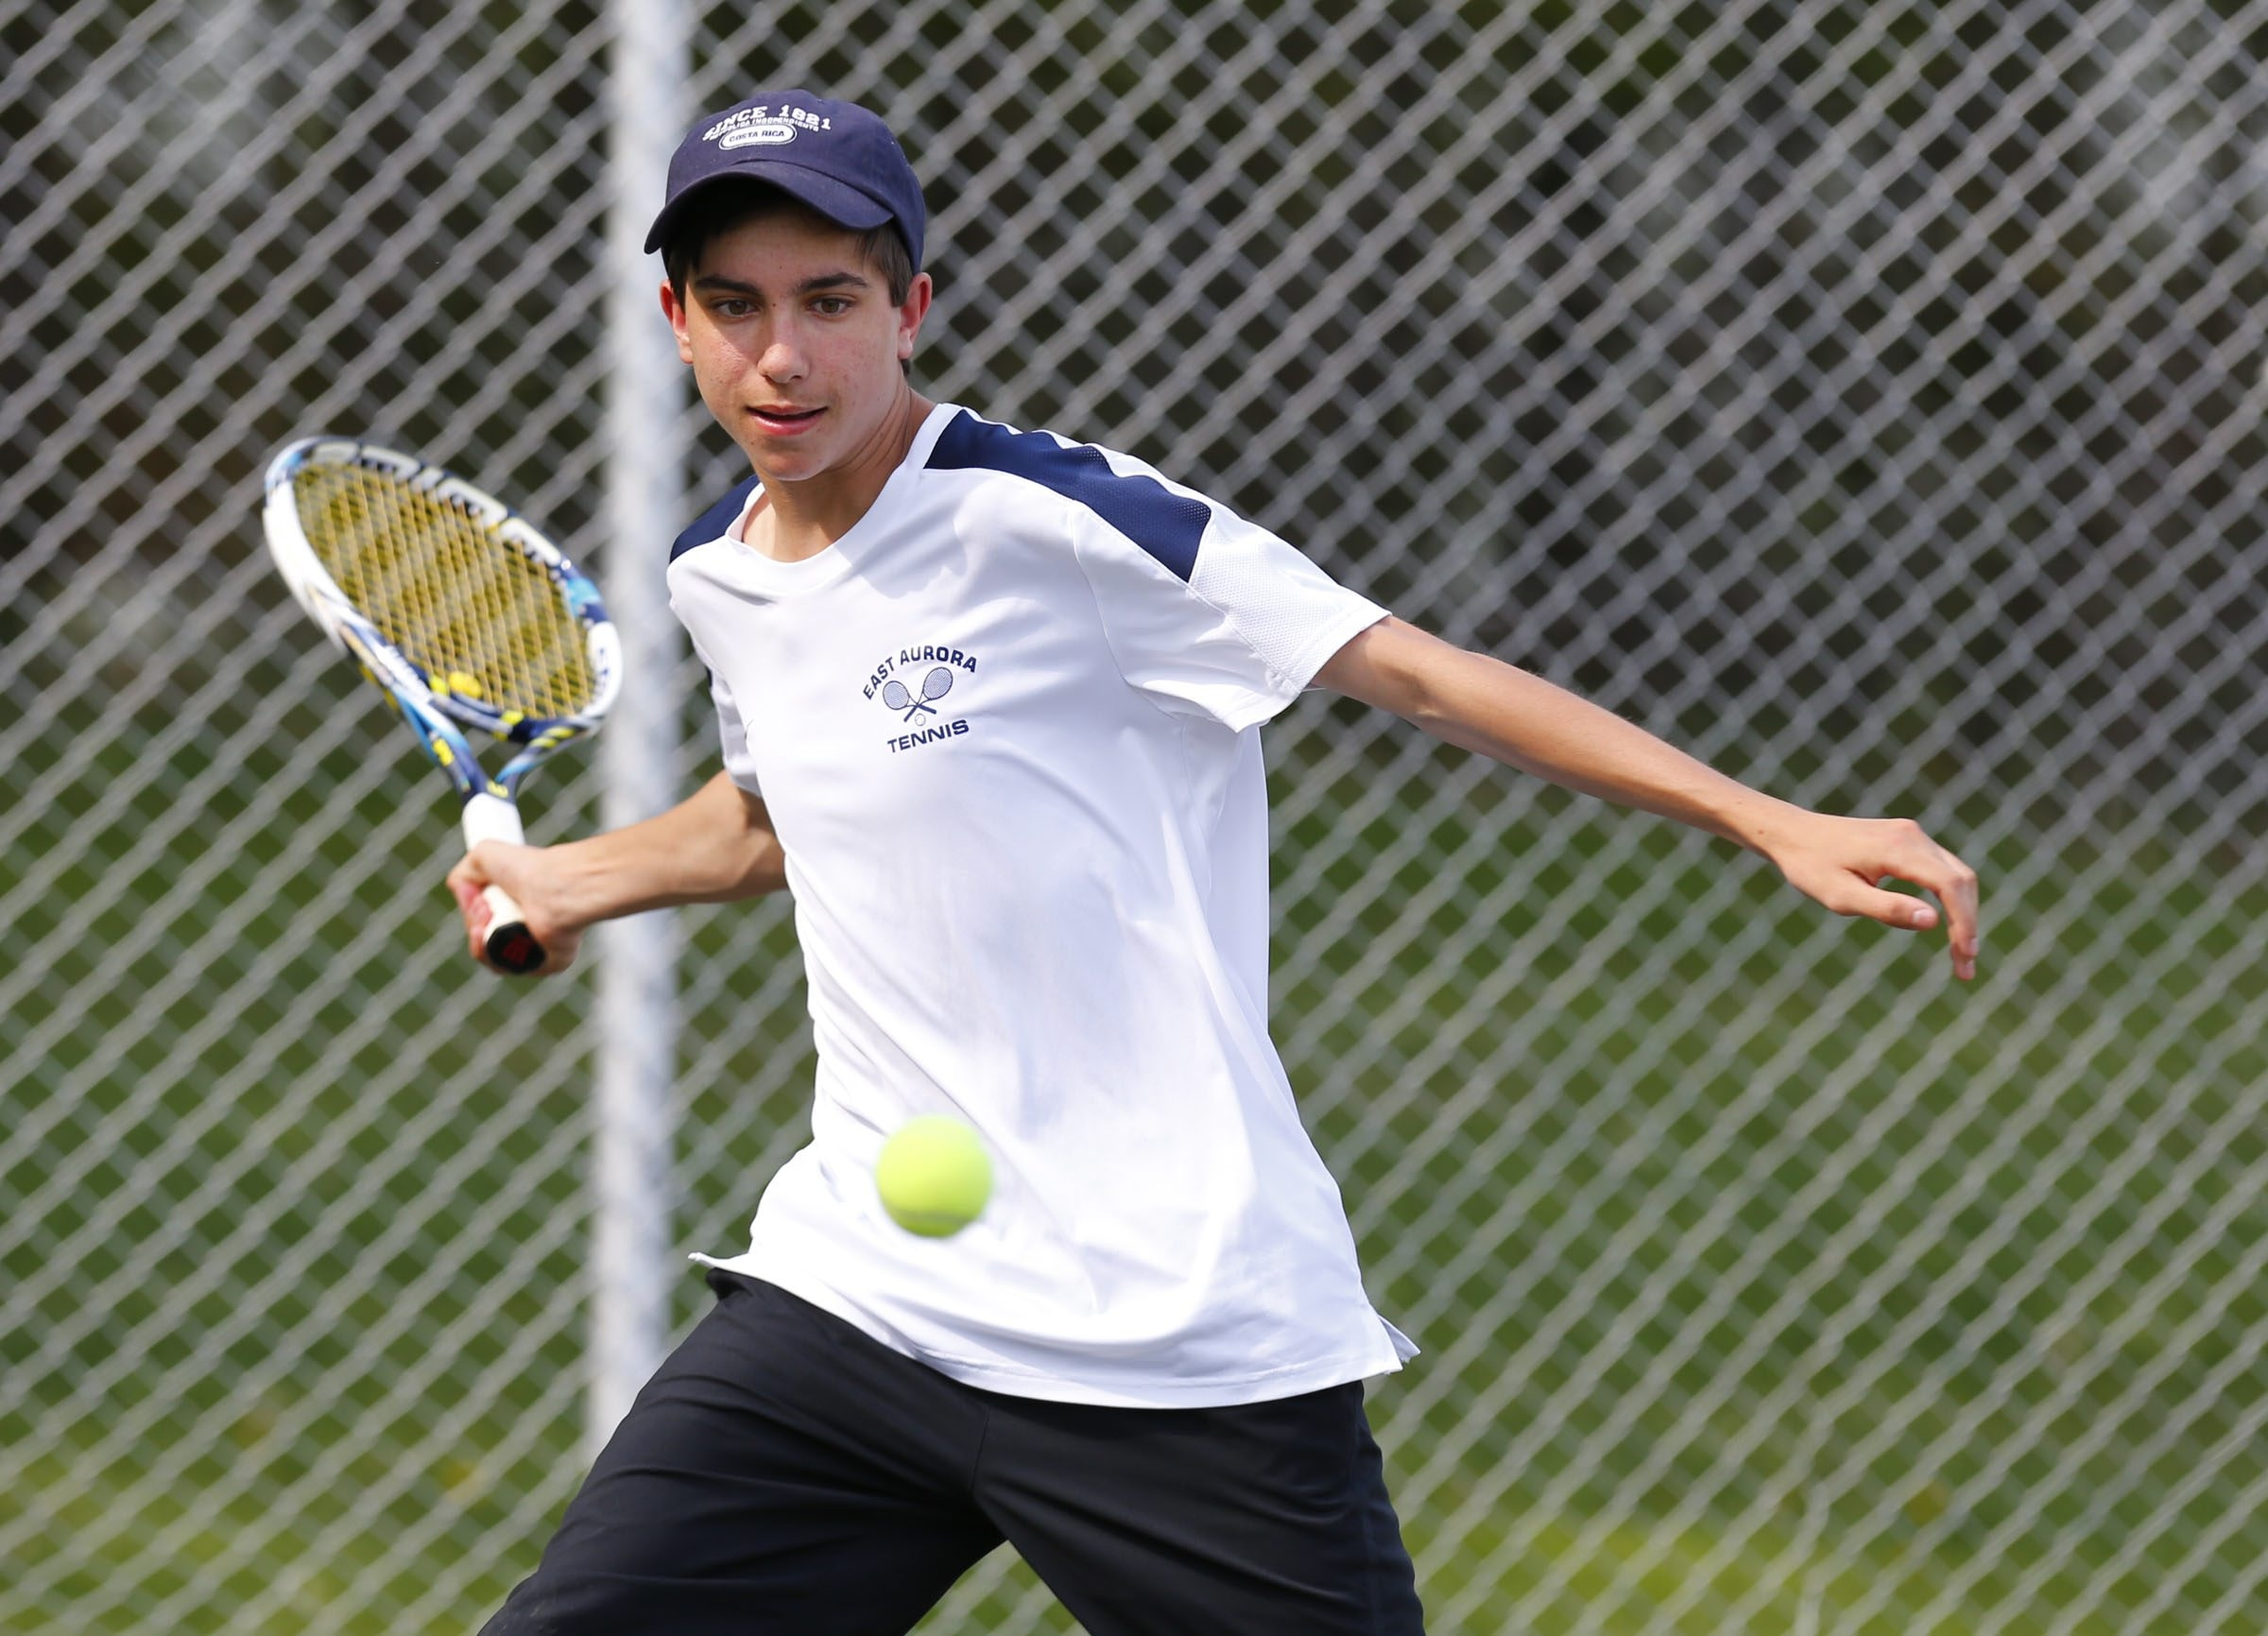 Jack McClaren of East Aurora, the Section VI singles champion, will begin state tournament play on Thursday at the USTA Billie Jean King National Tennis Center in Flushing, Queens.